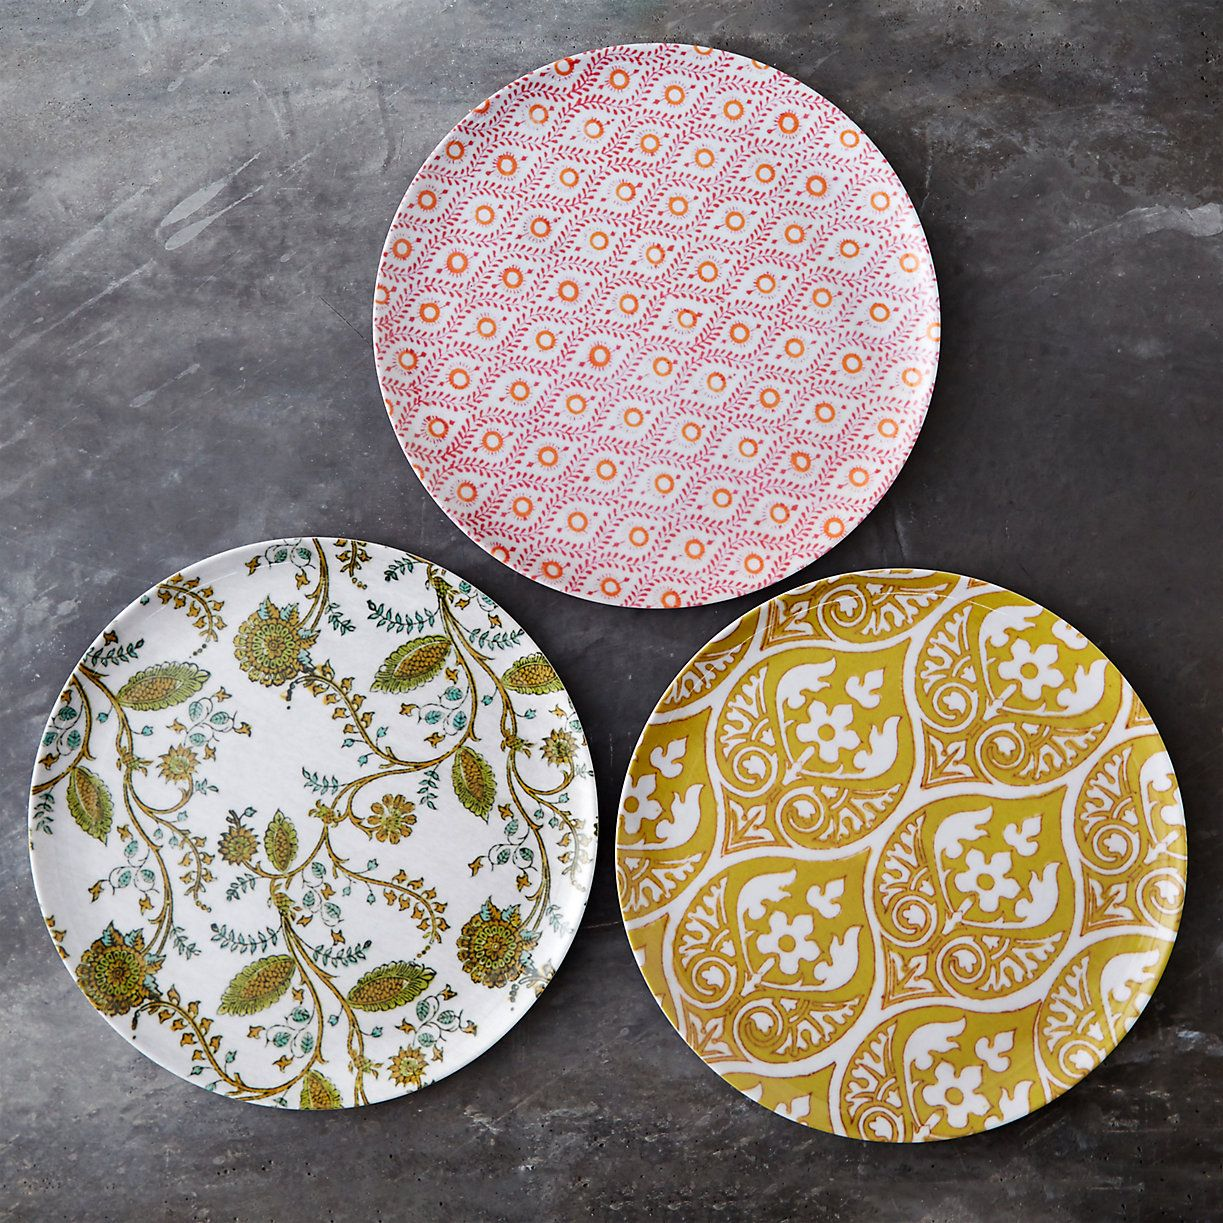 Melamine Picnic Plate & Melamine Picnic Plate | Picnic plates Serveware and Outdoor living